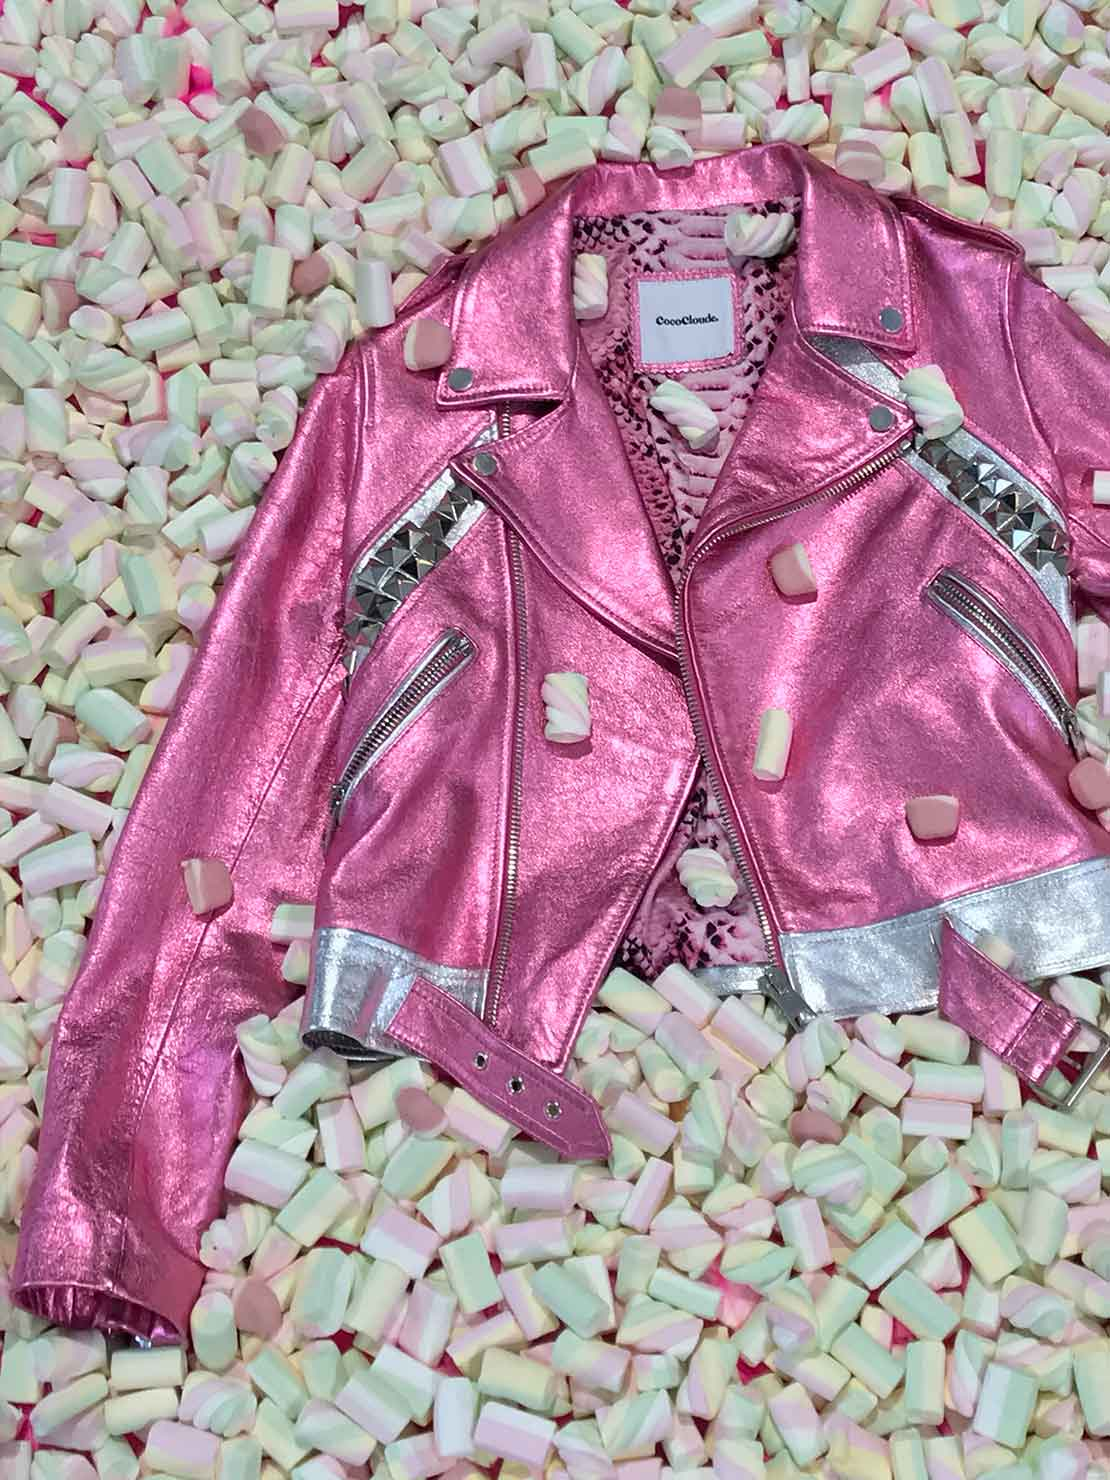 COCOCLOUDE - leather jacket Pink